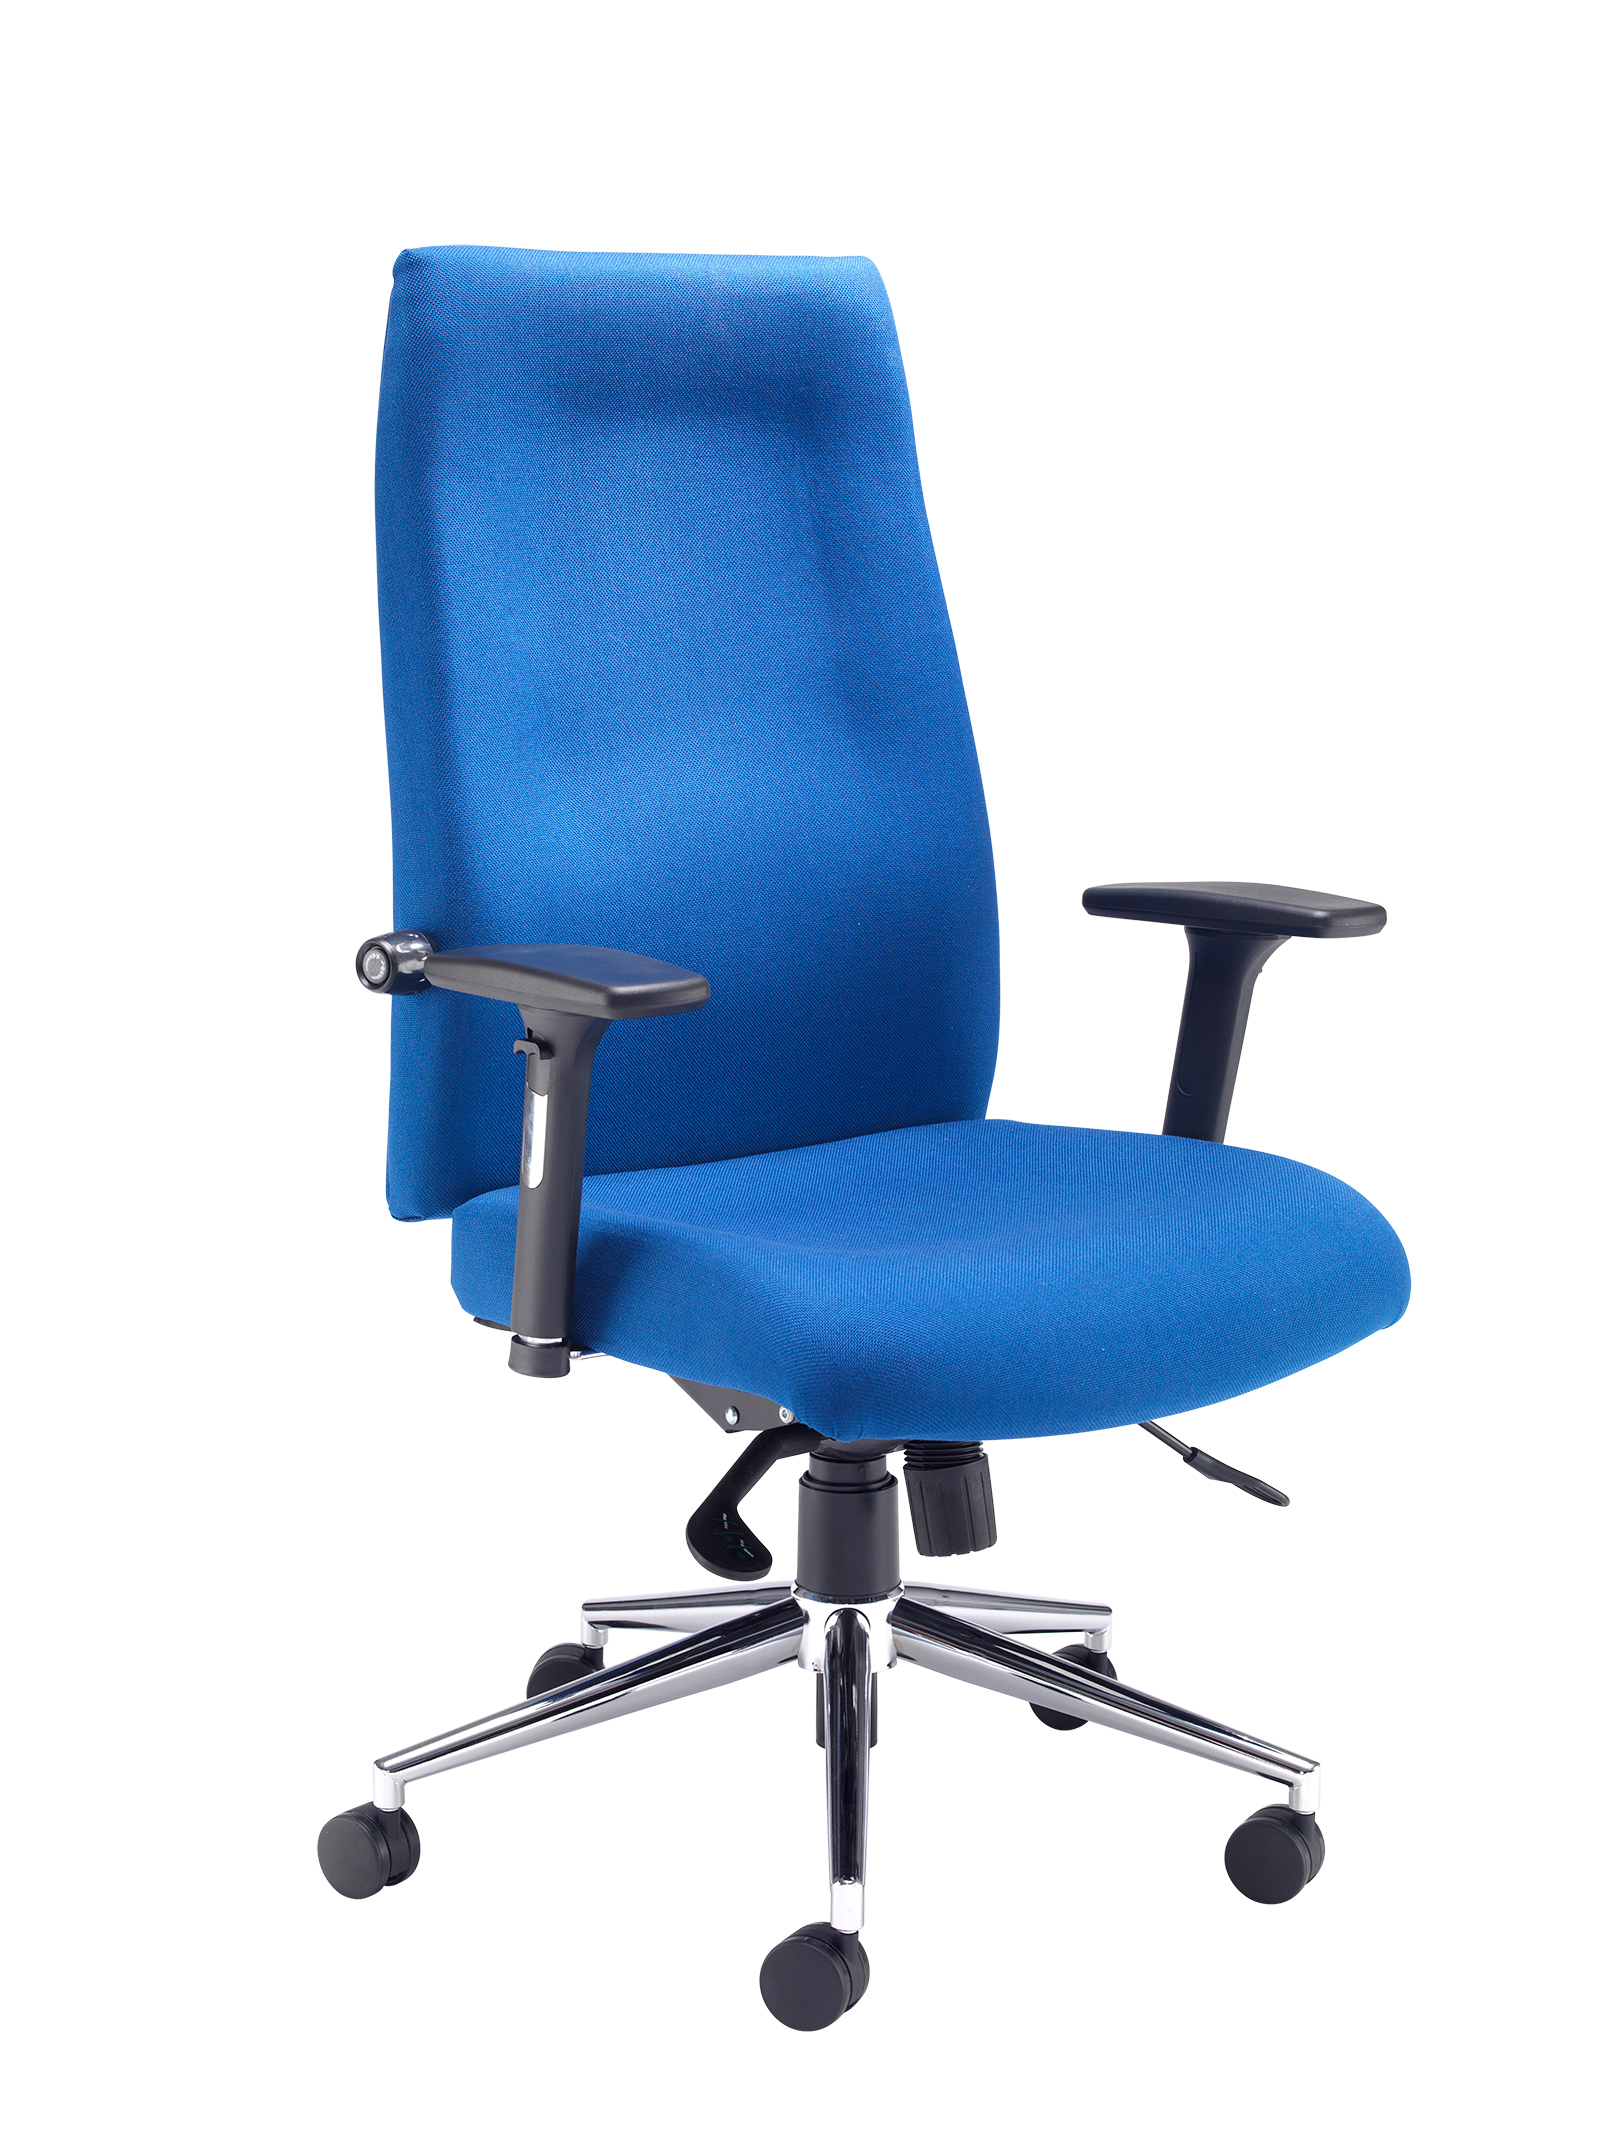 Mode 400 contract high back managers chair - blue